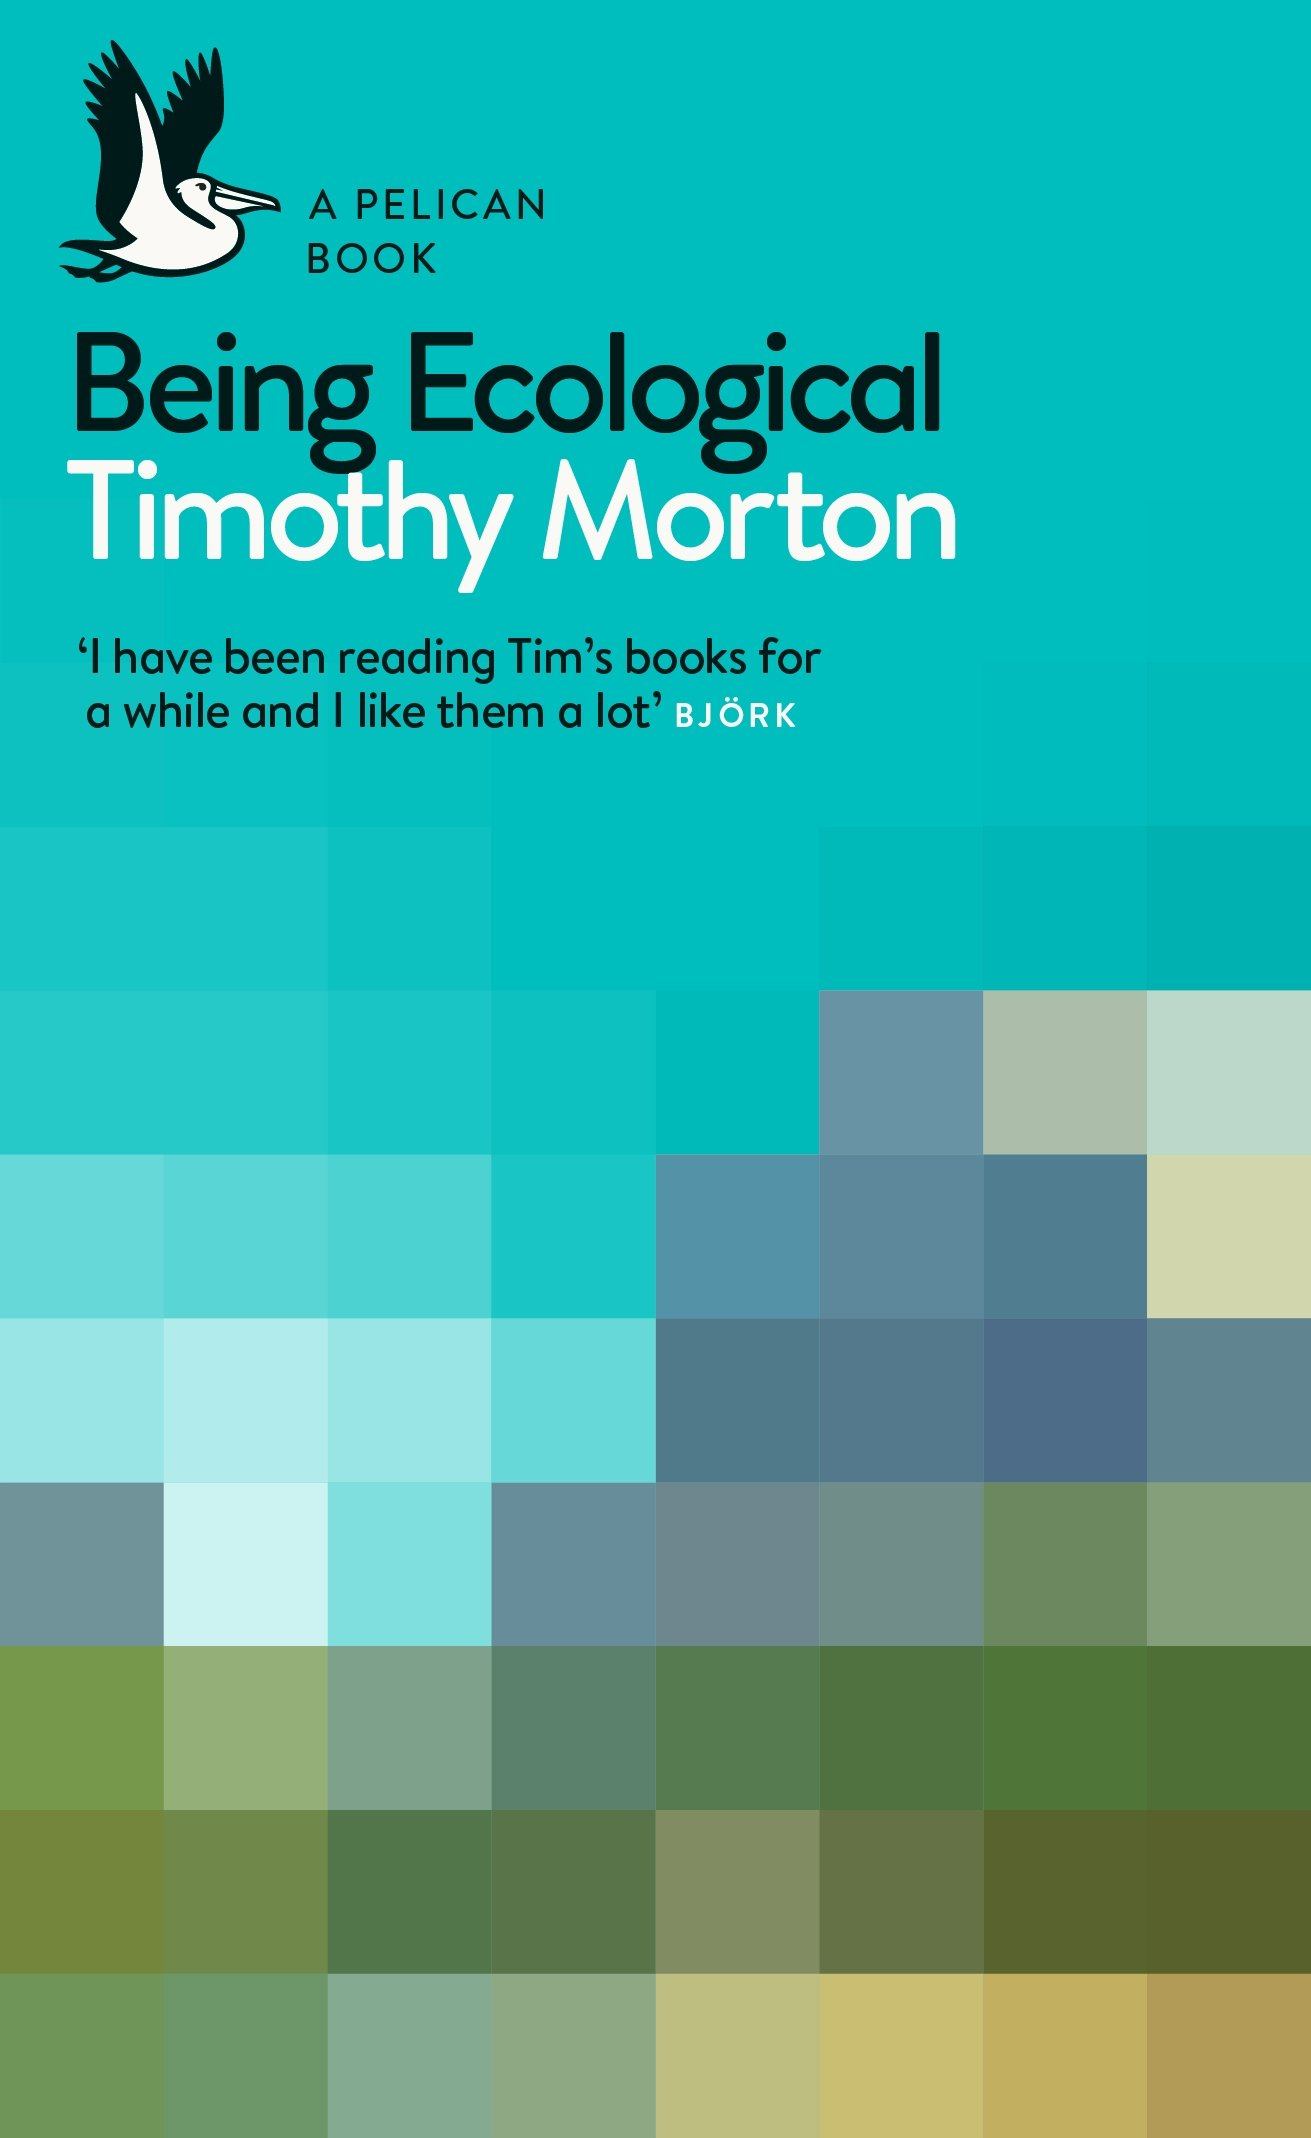 Morton, Timothy, Being Ecological (Pelic